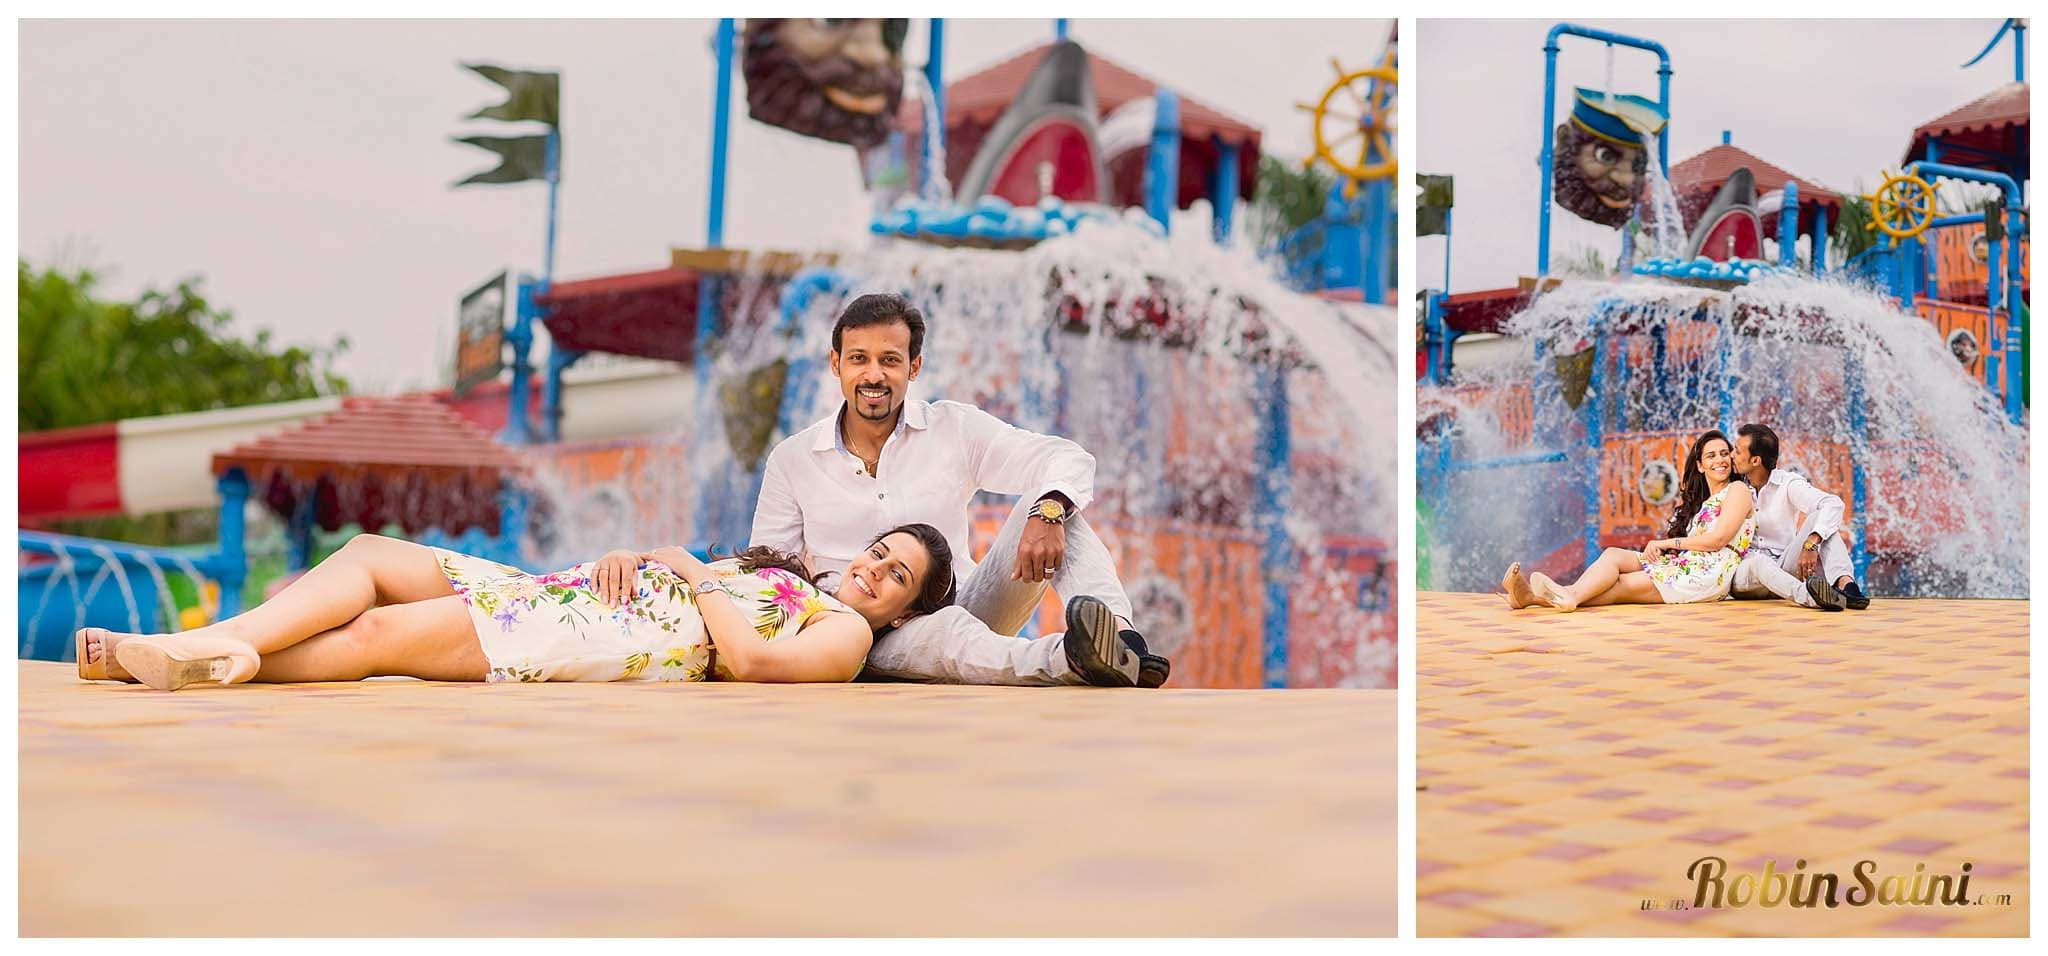 pre wedding lovable moments:robin saini photography